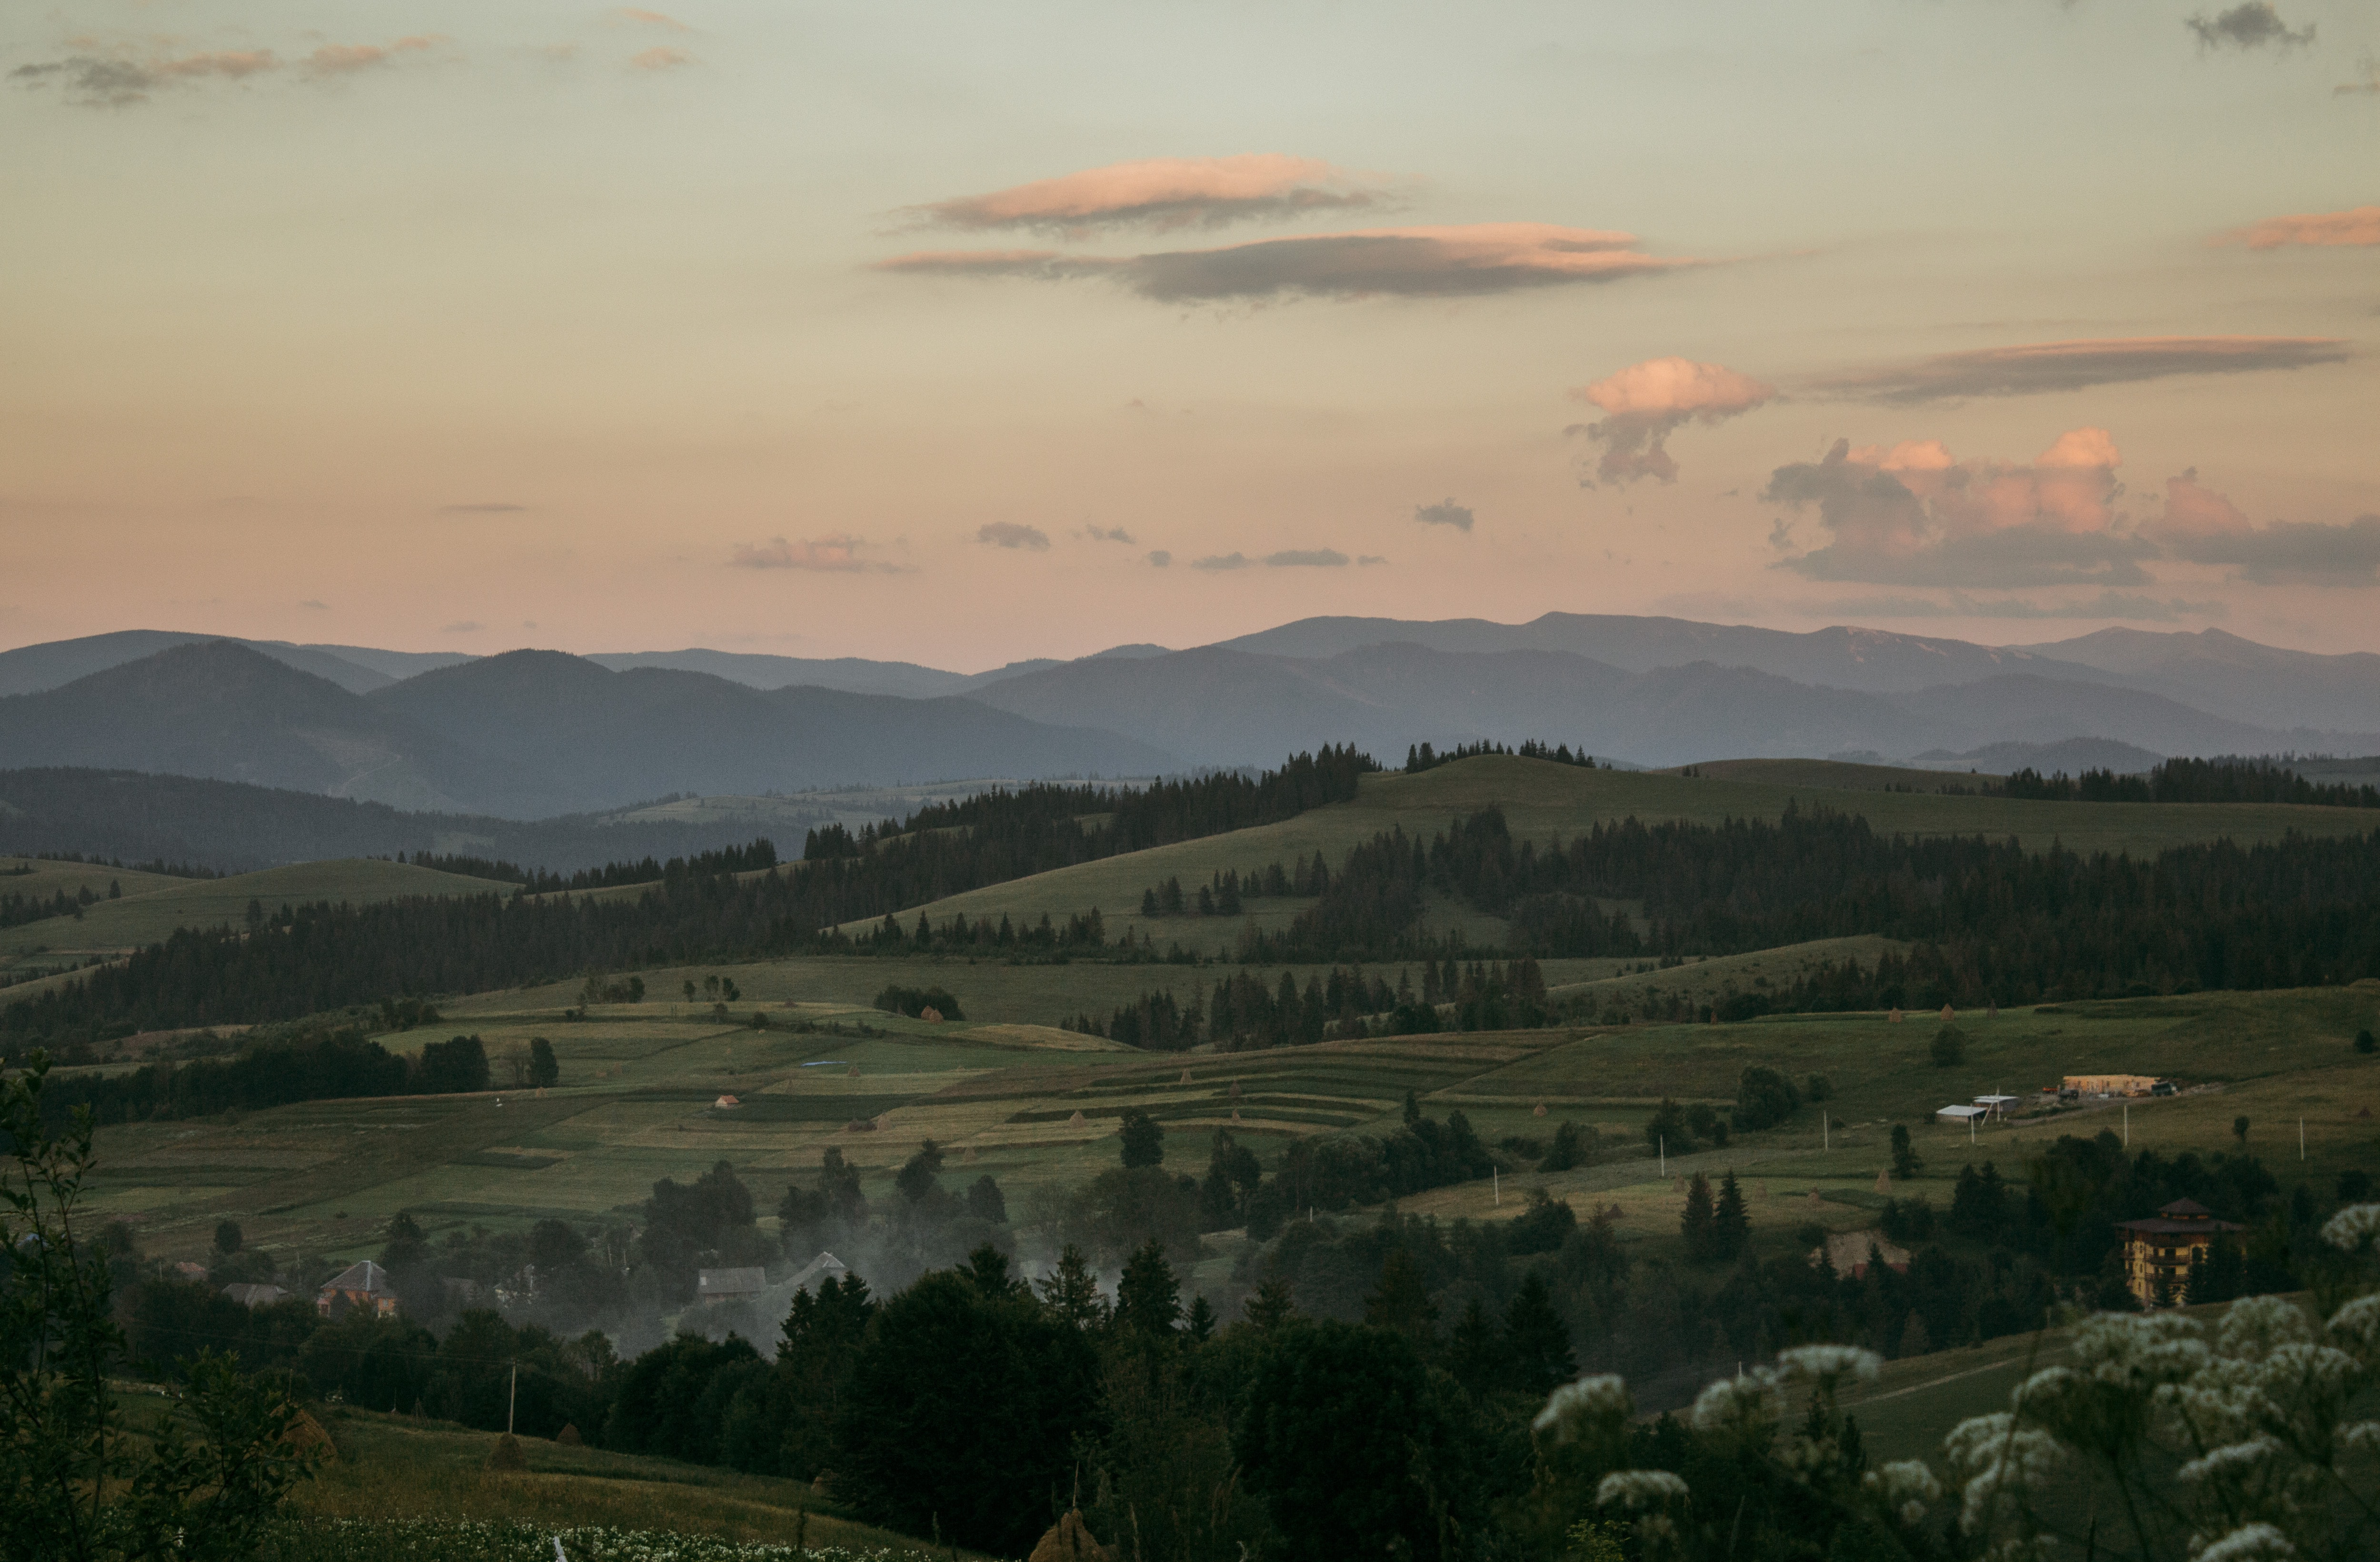 A rural landscape stretching along undulating hills in the Carpathian Mountains